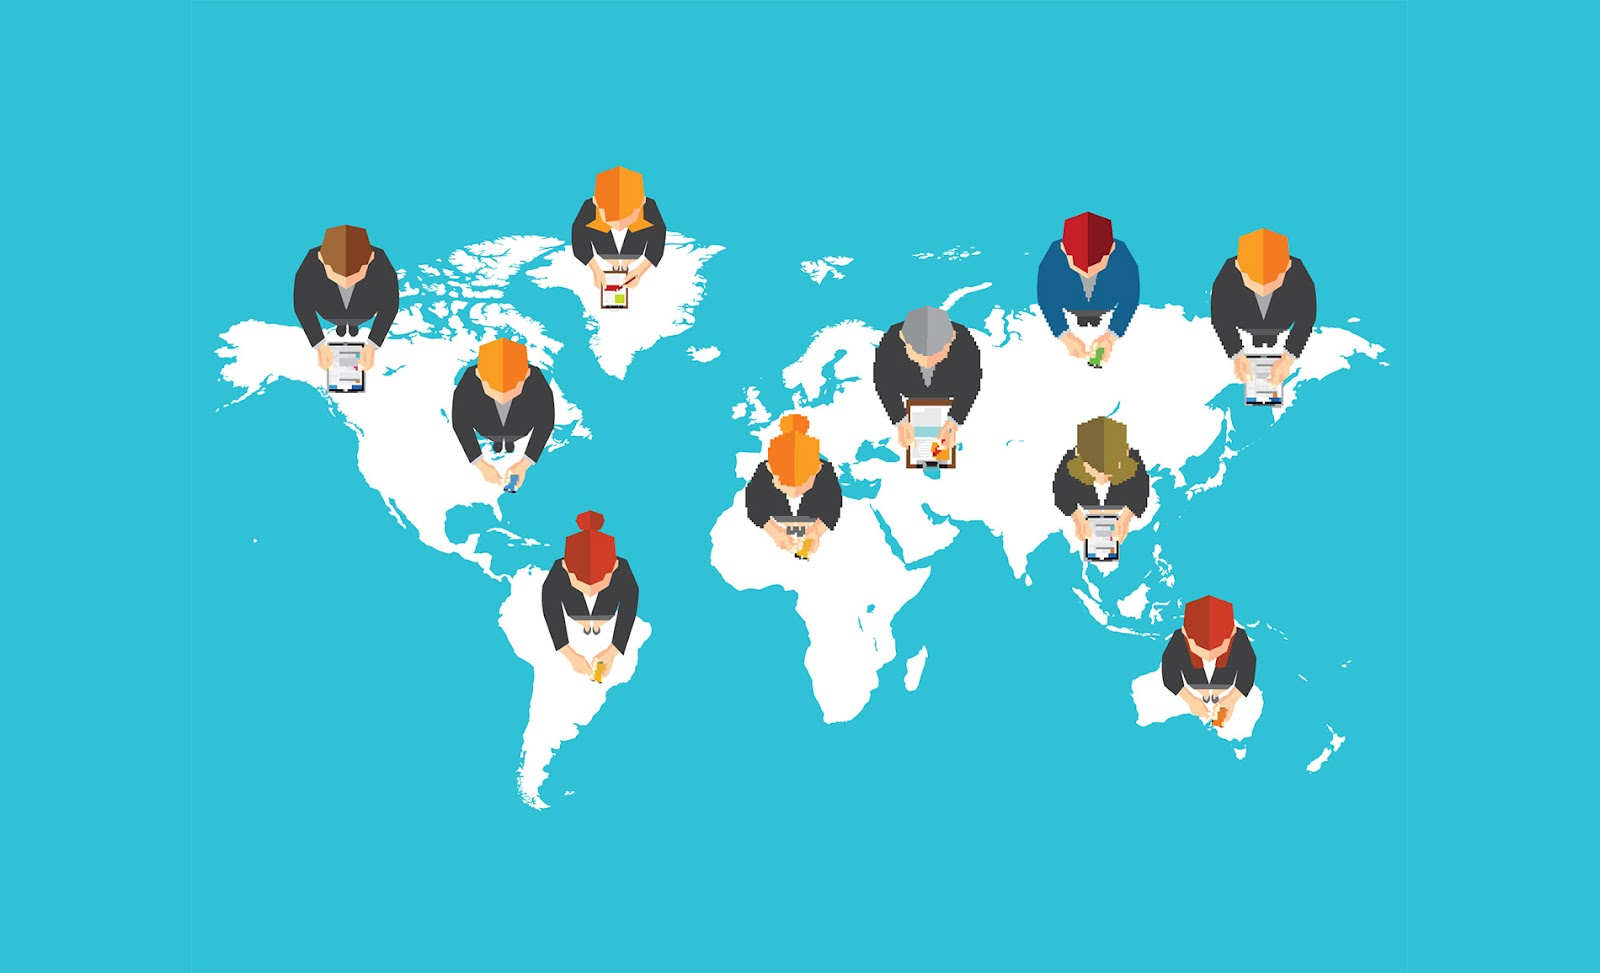 Representation of people working together across the world, which is possible now due to increased virtual workspaces.